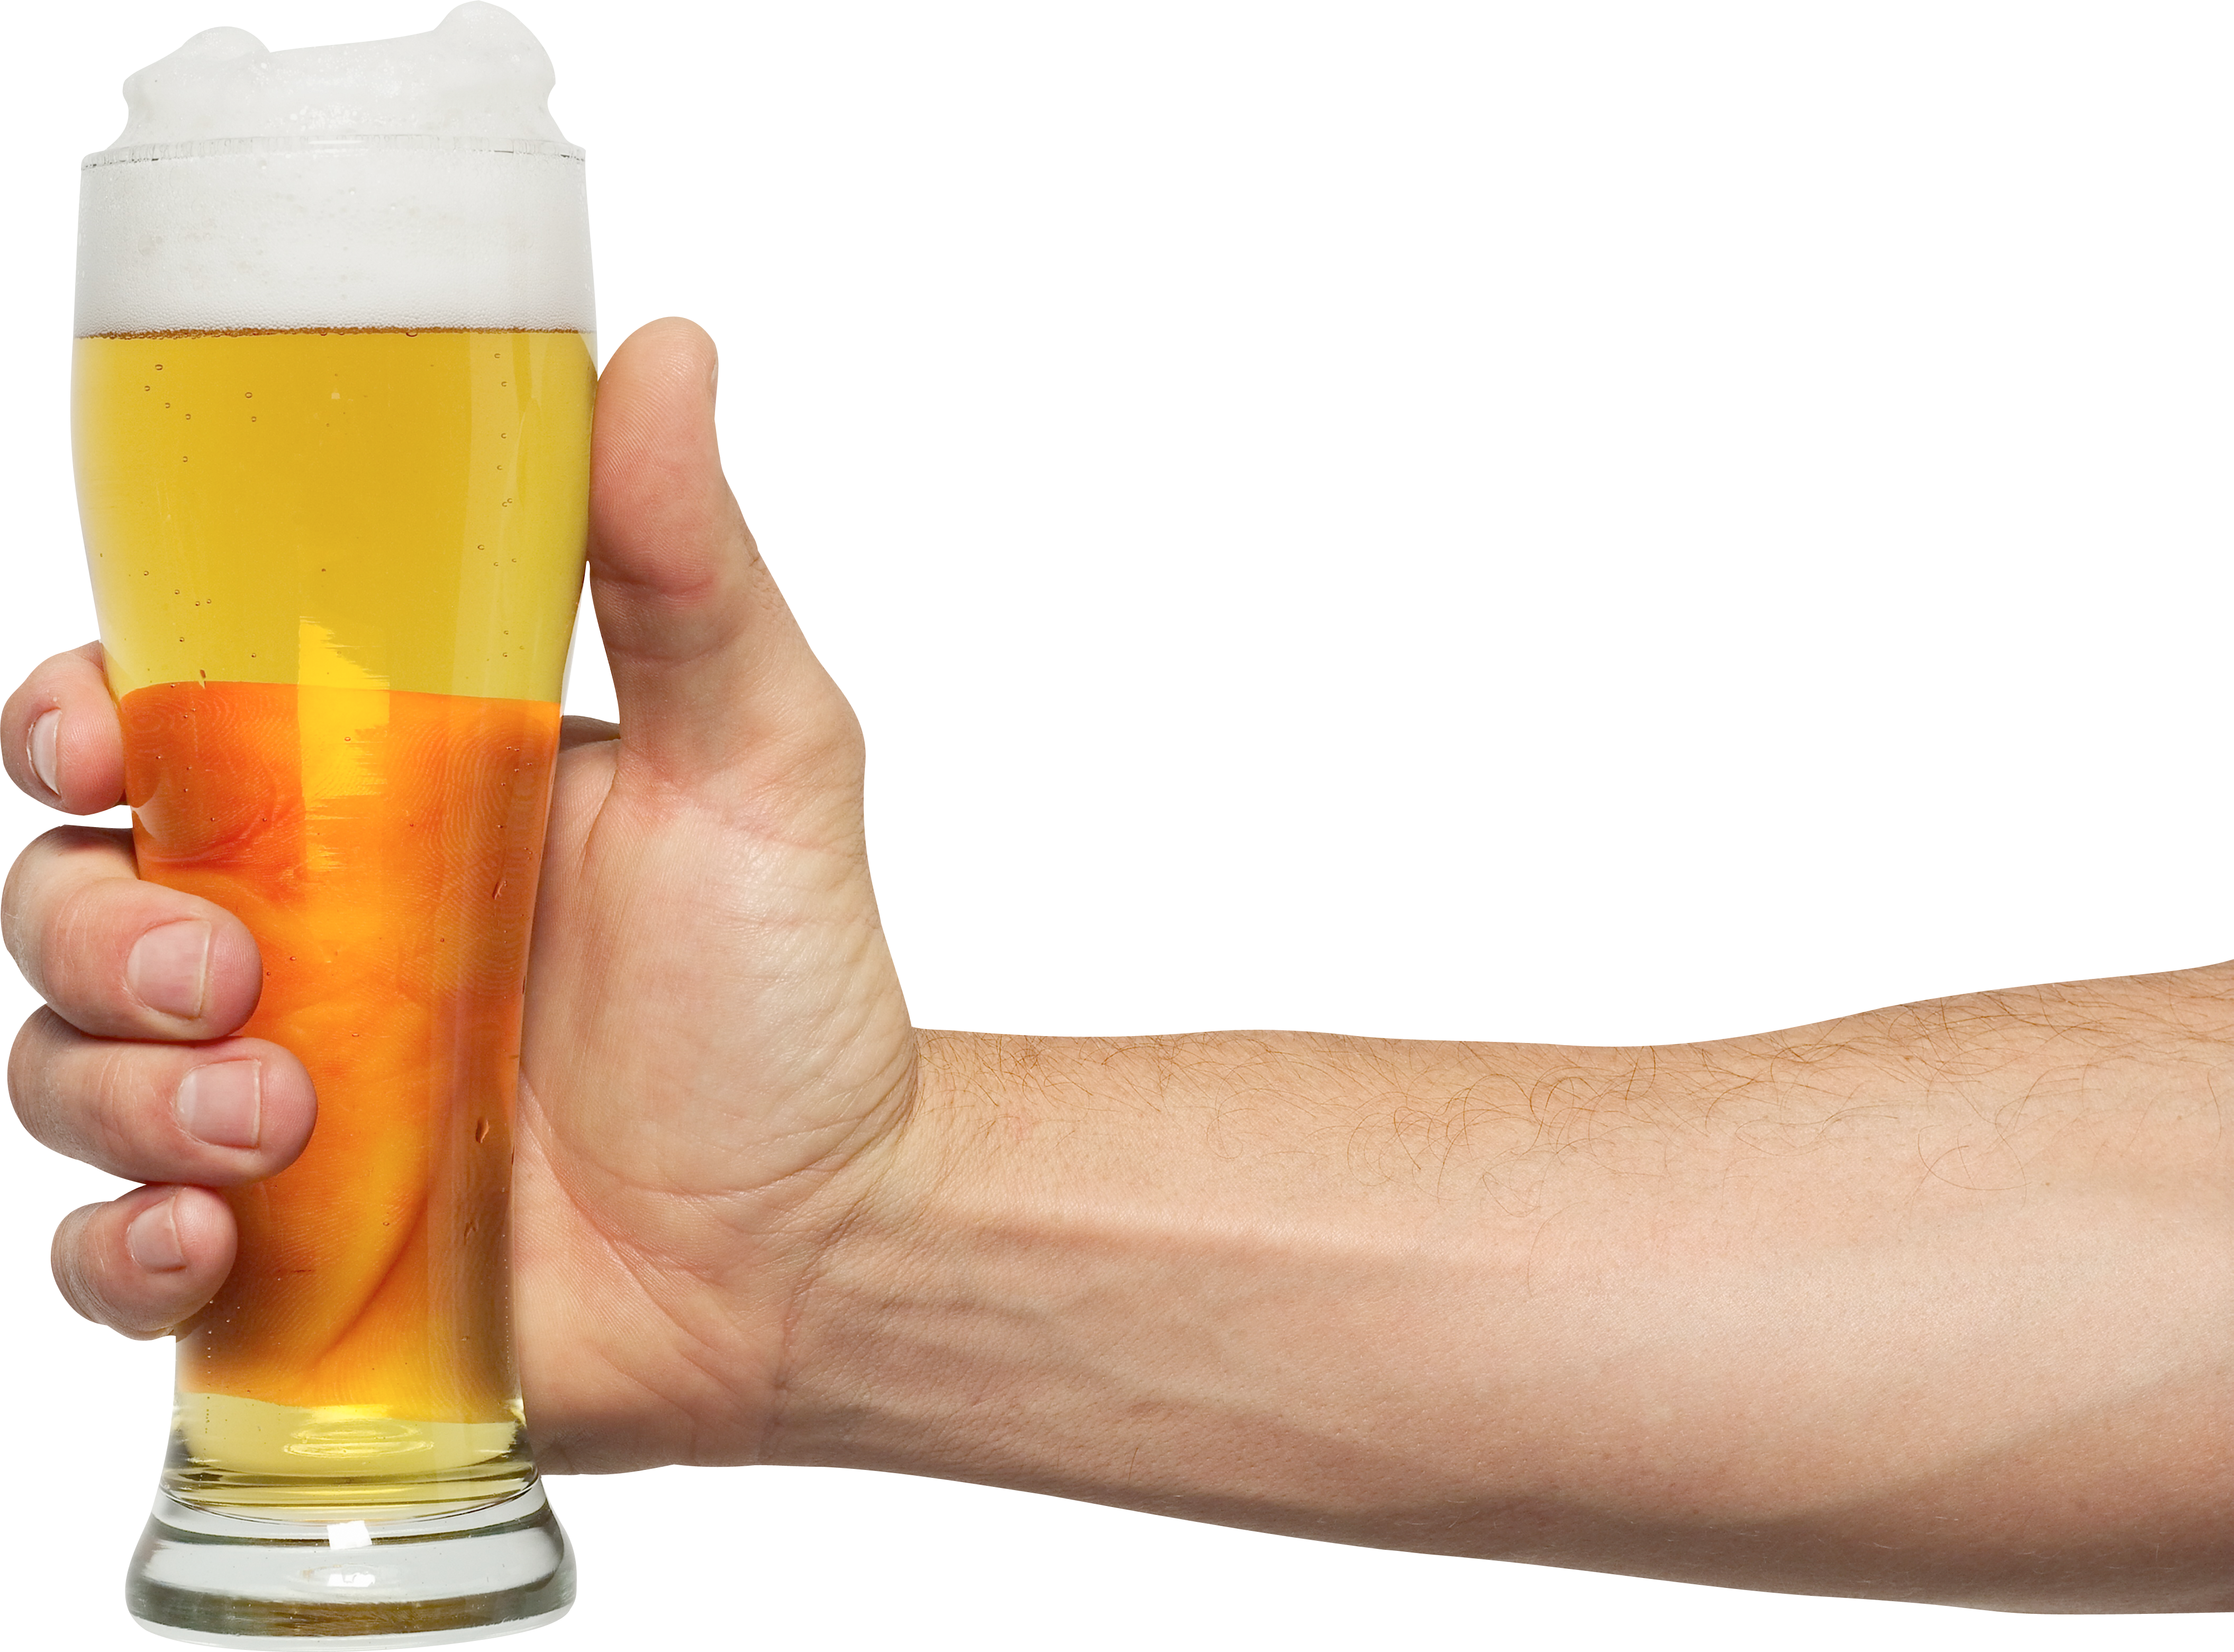 Glass of beer two. Drink clipart hand holding